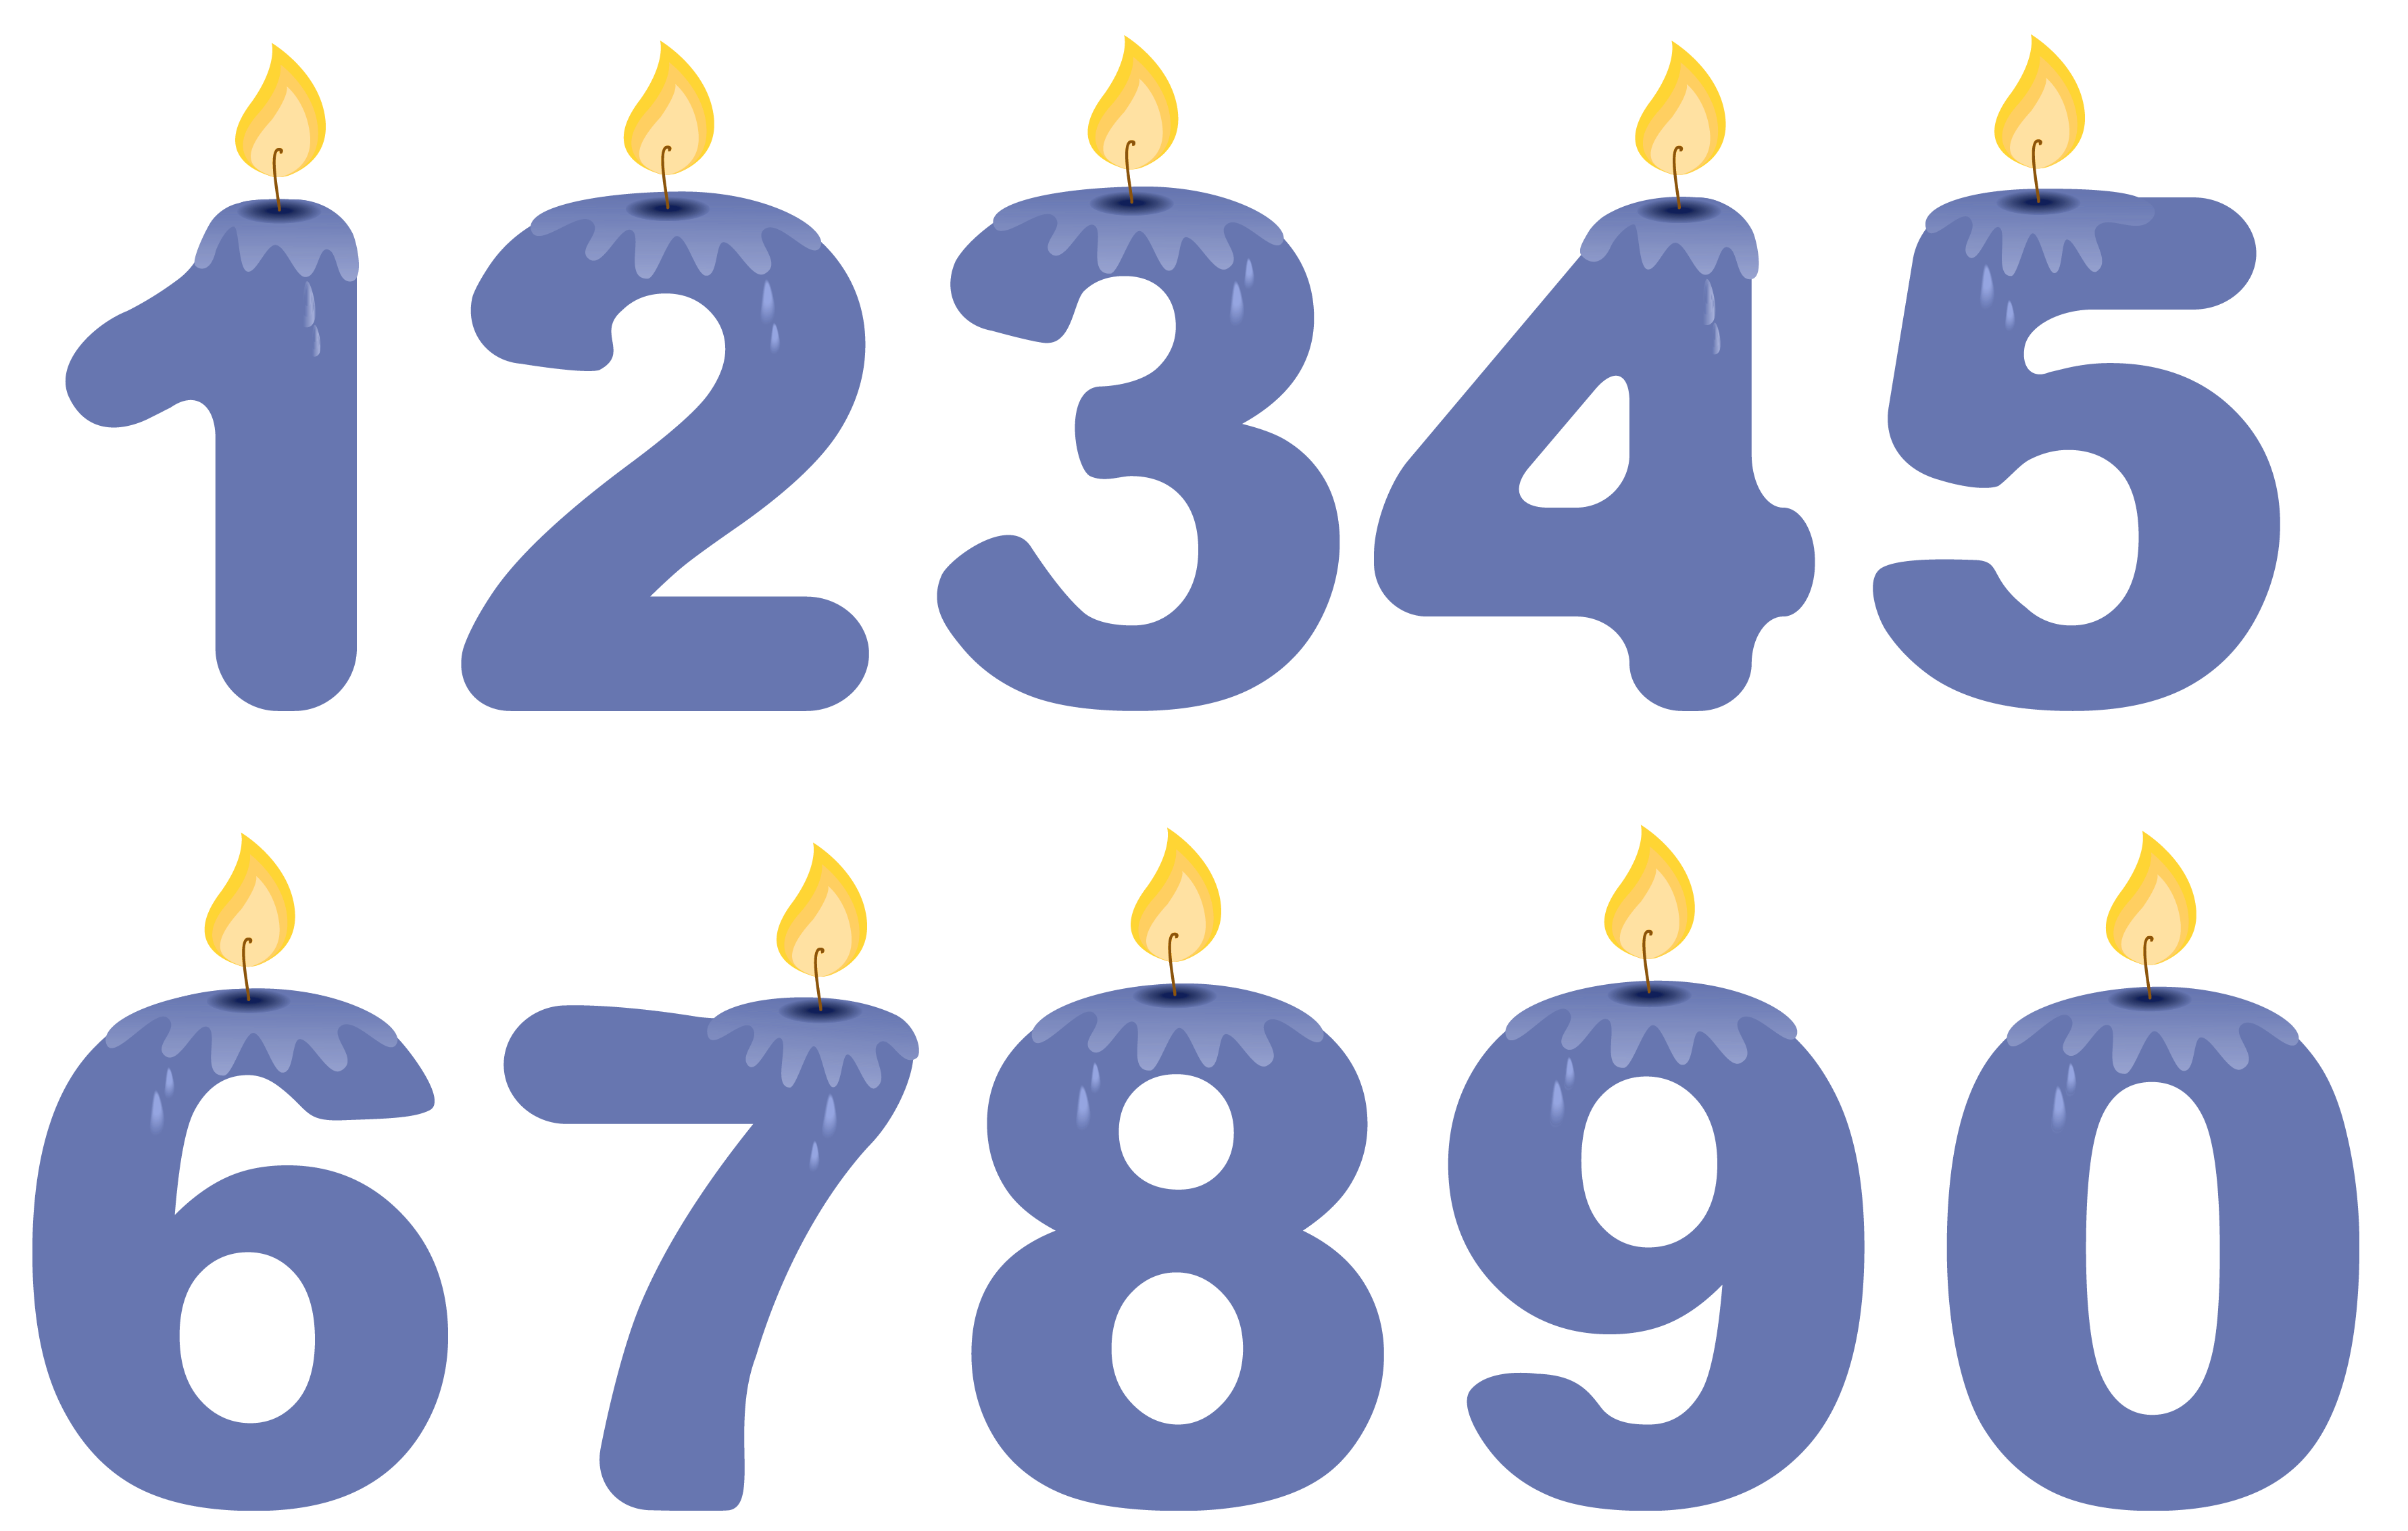 Numbers png. Transparent birthday candles blue